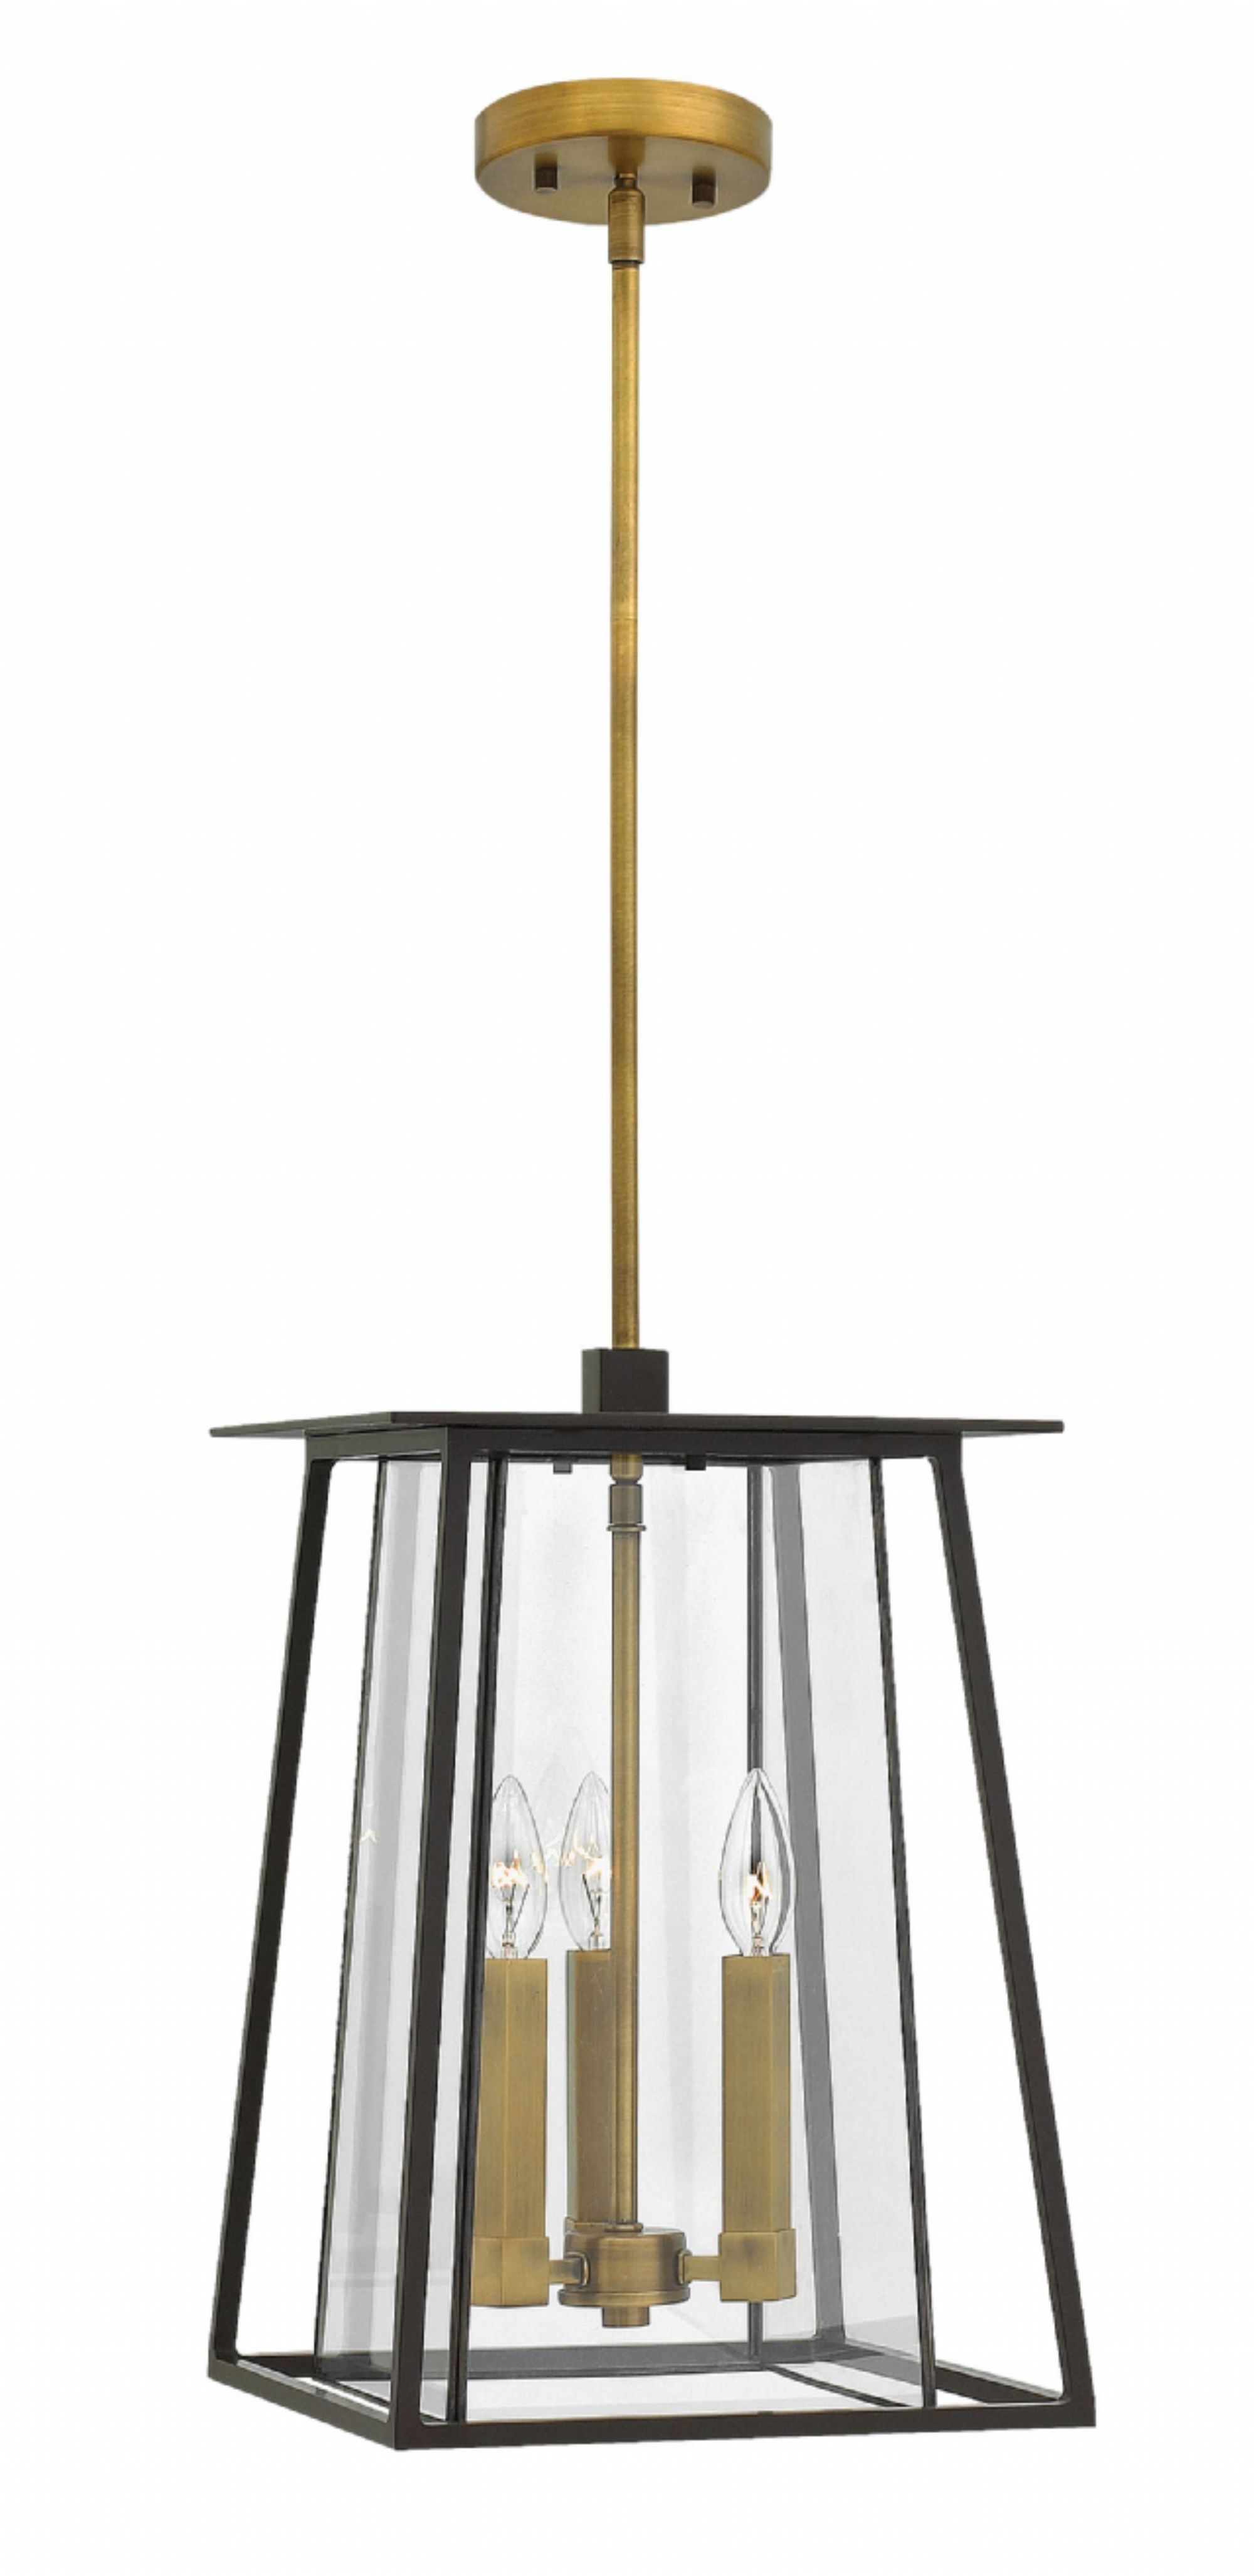 Buckeye Bronze Walker > Exterior Ceiling Mount Within Well Liked Hinkley Outdoor Ceiling Lights (View 5 of 20)